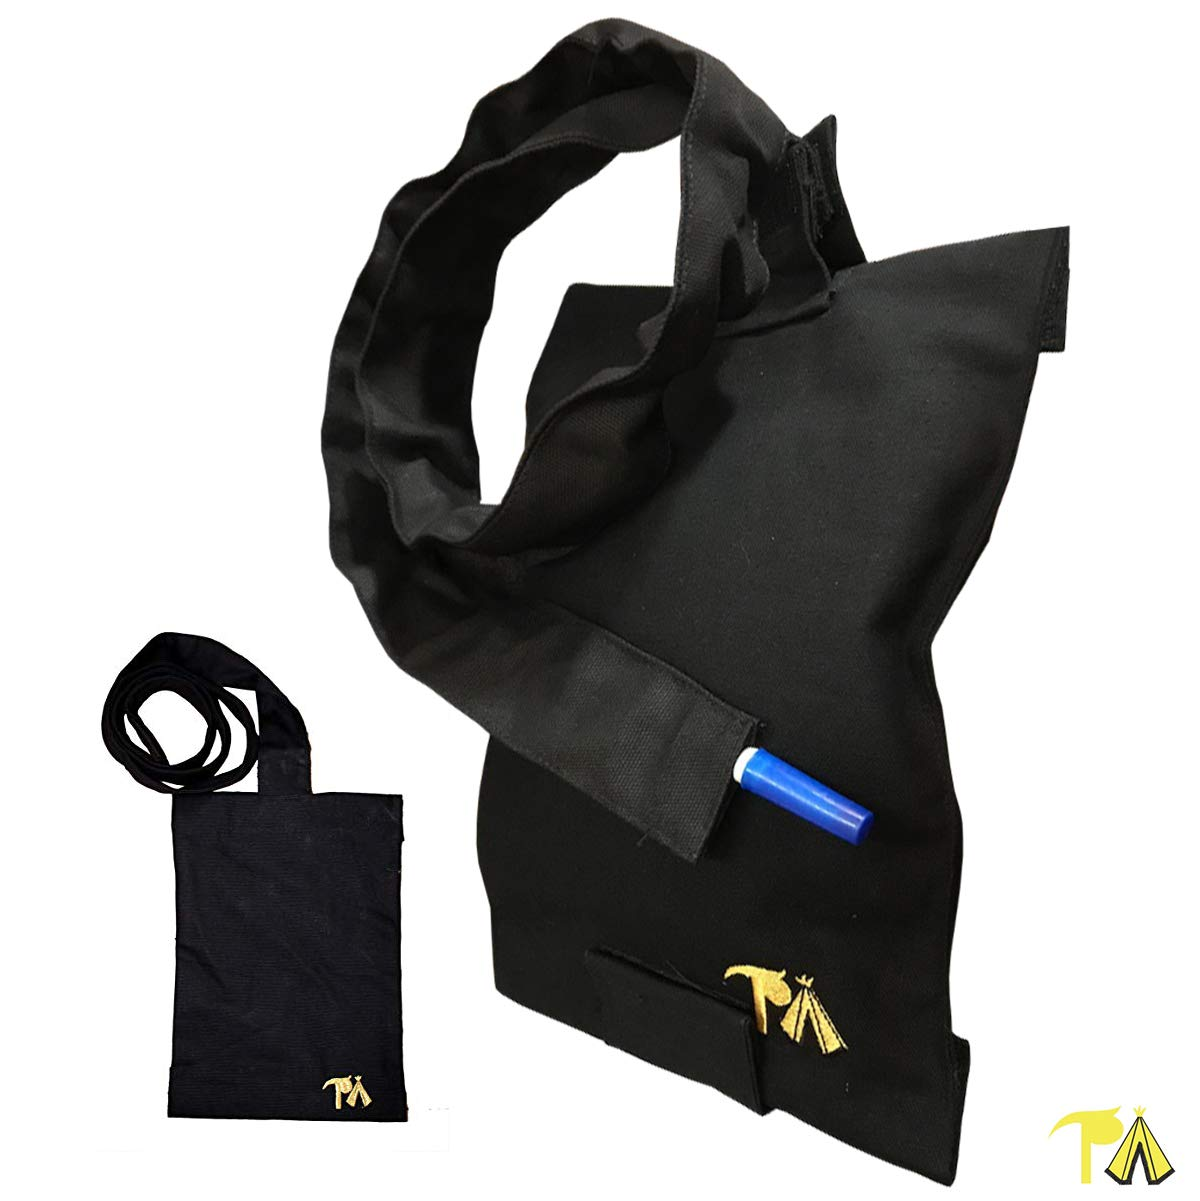 TP Bag Portable Catheter Bag Covers with Detachable Tube (2000 mL) Discrete Home and Travel Use | Scooter, Easy Chair, Bed Side | NOT a Leg Bag Cover| 11 x 8 x 1 in by The TP Bag Company